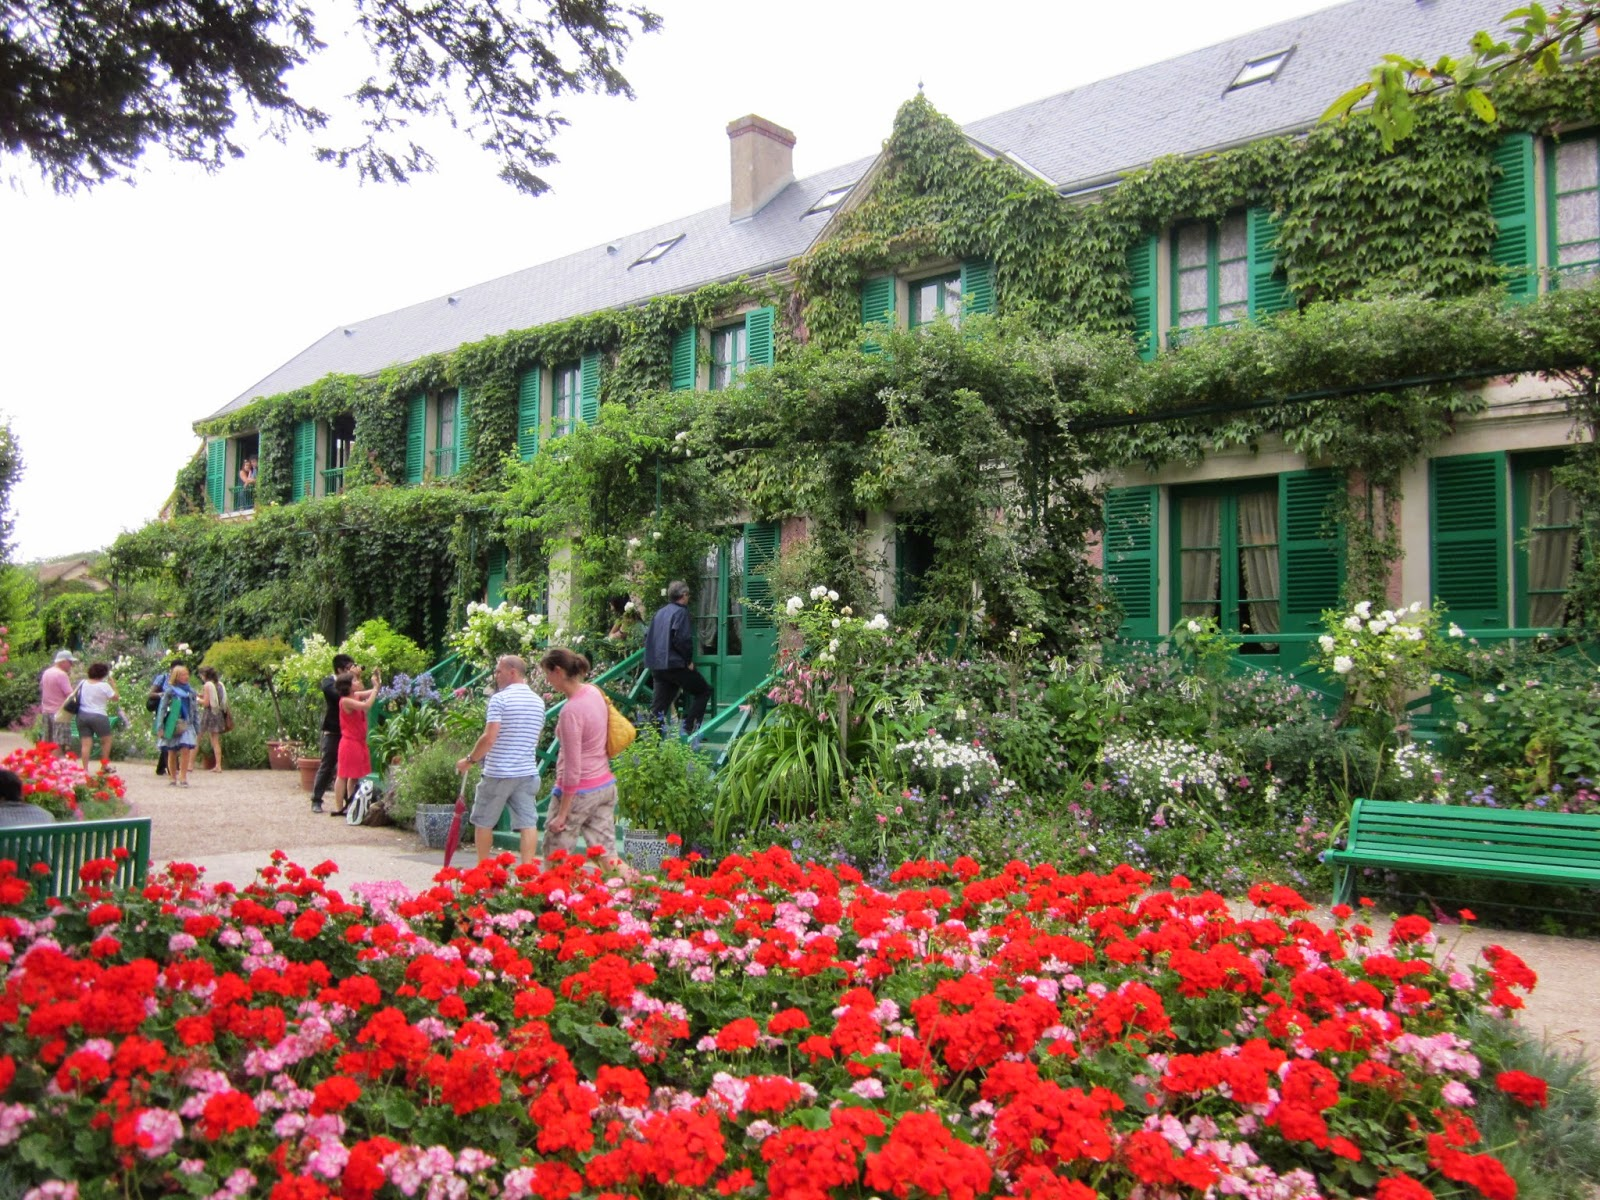 Monet's house and garden, Giverny